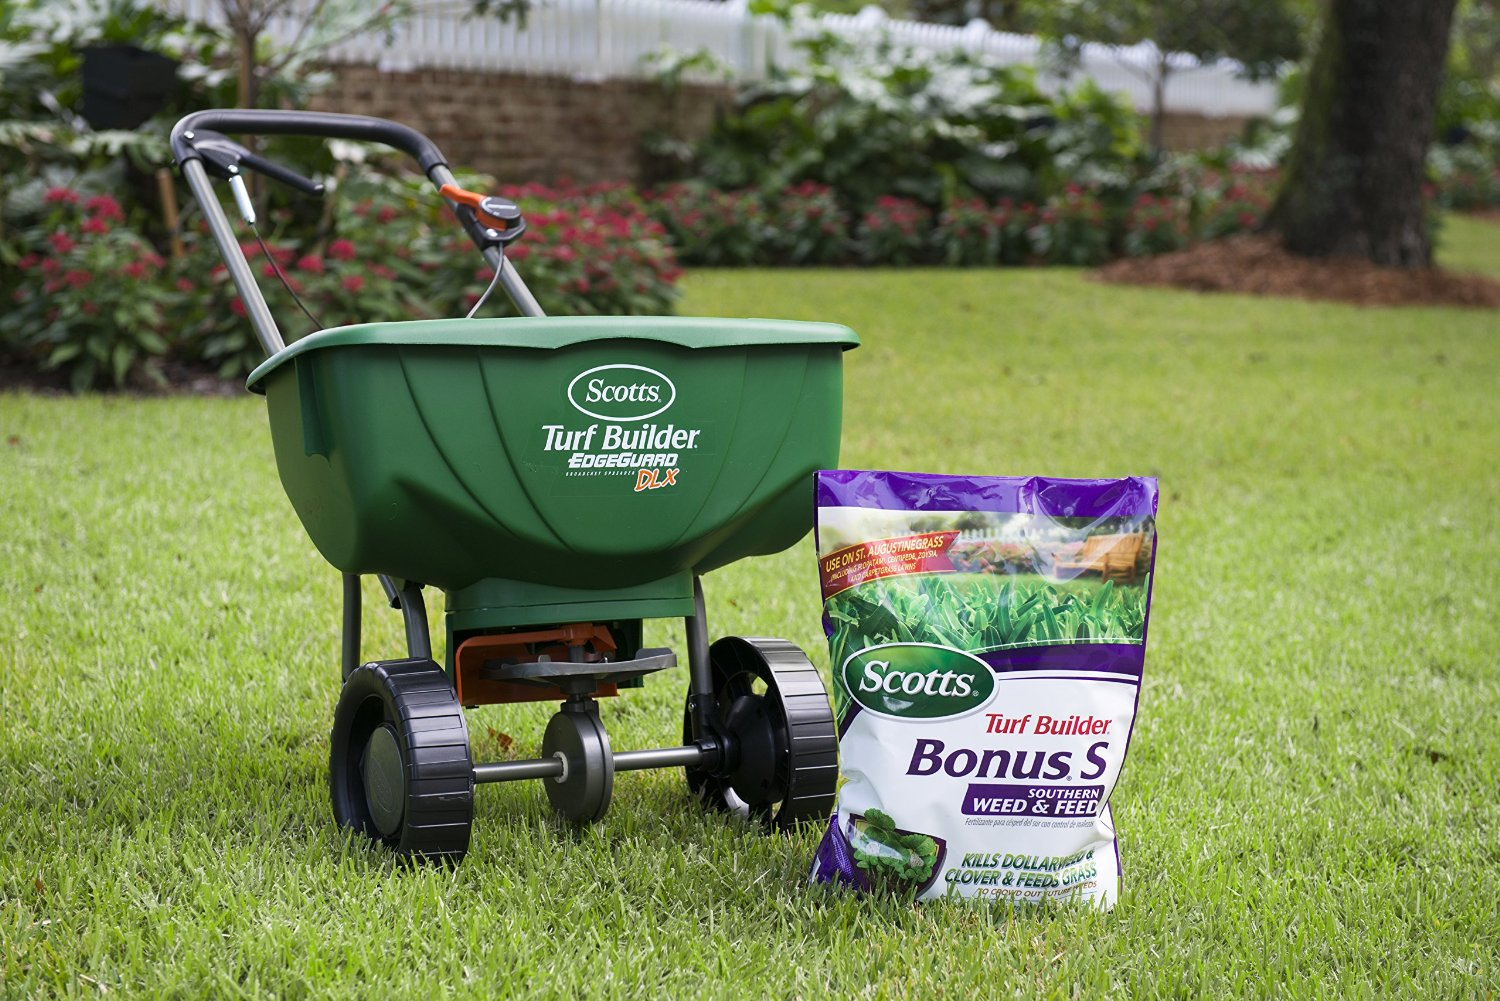 Scotts Turf Builder Bonus S Southern Weed And Feed Lawn